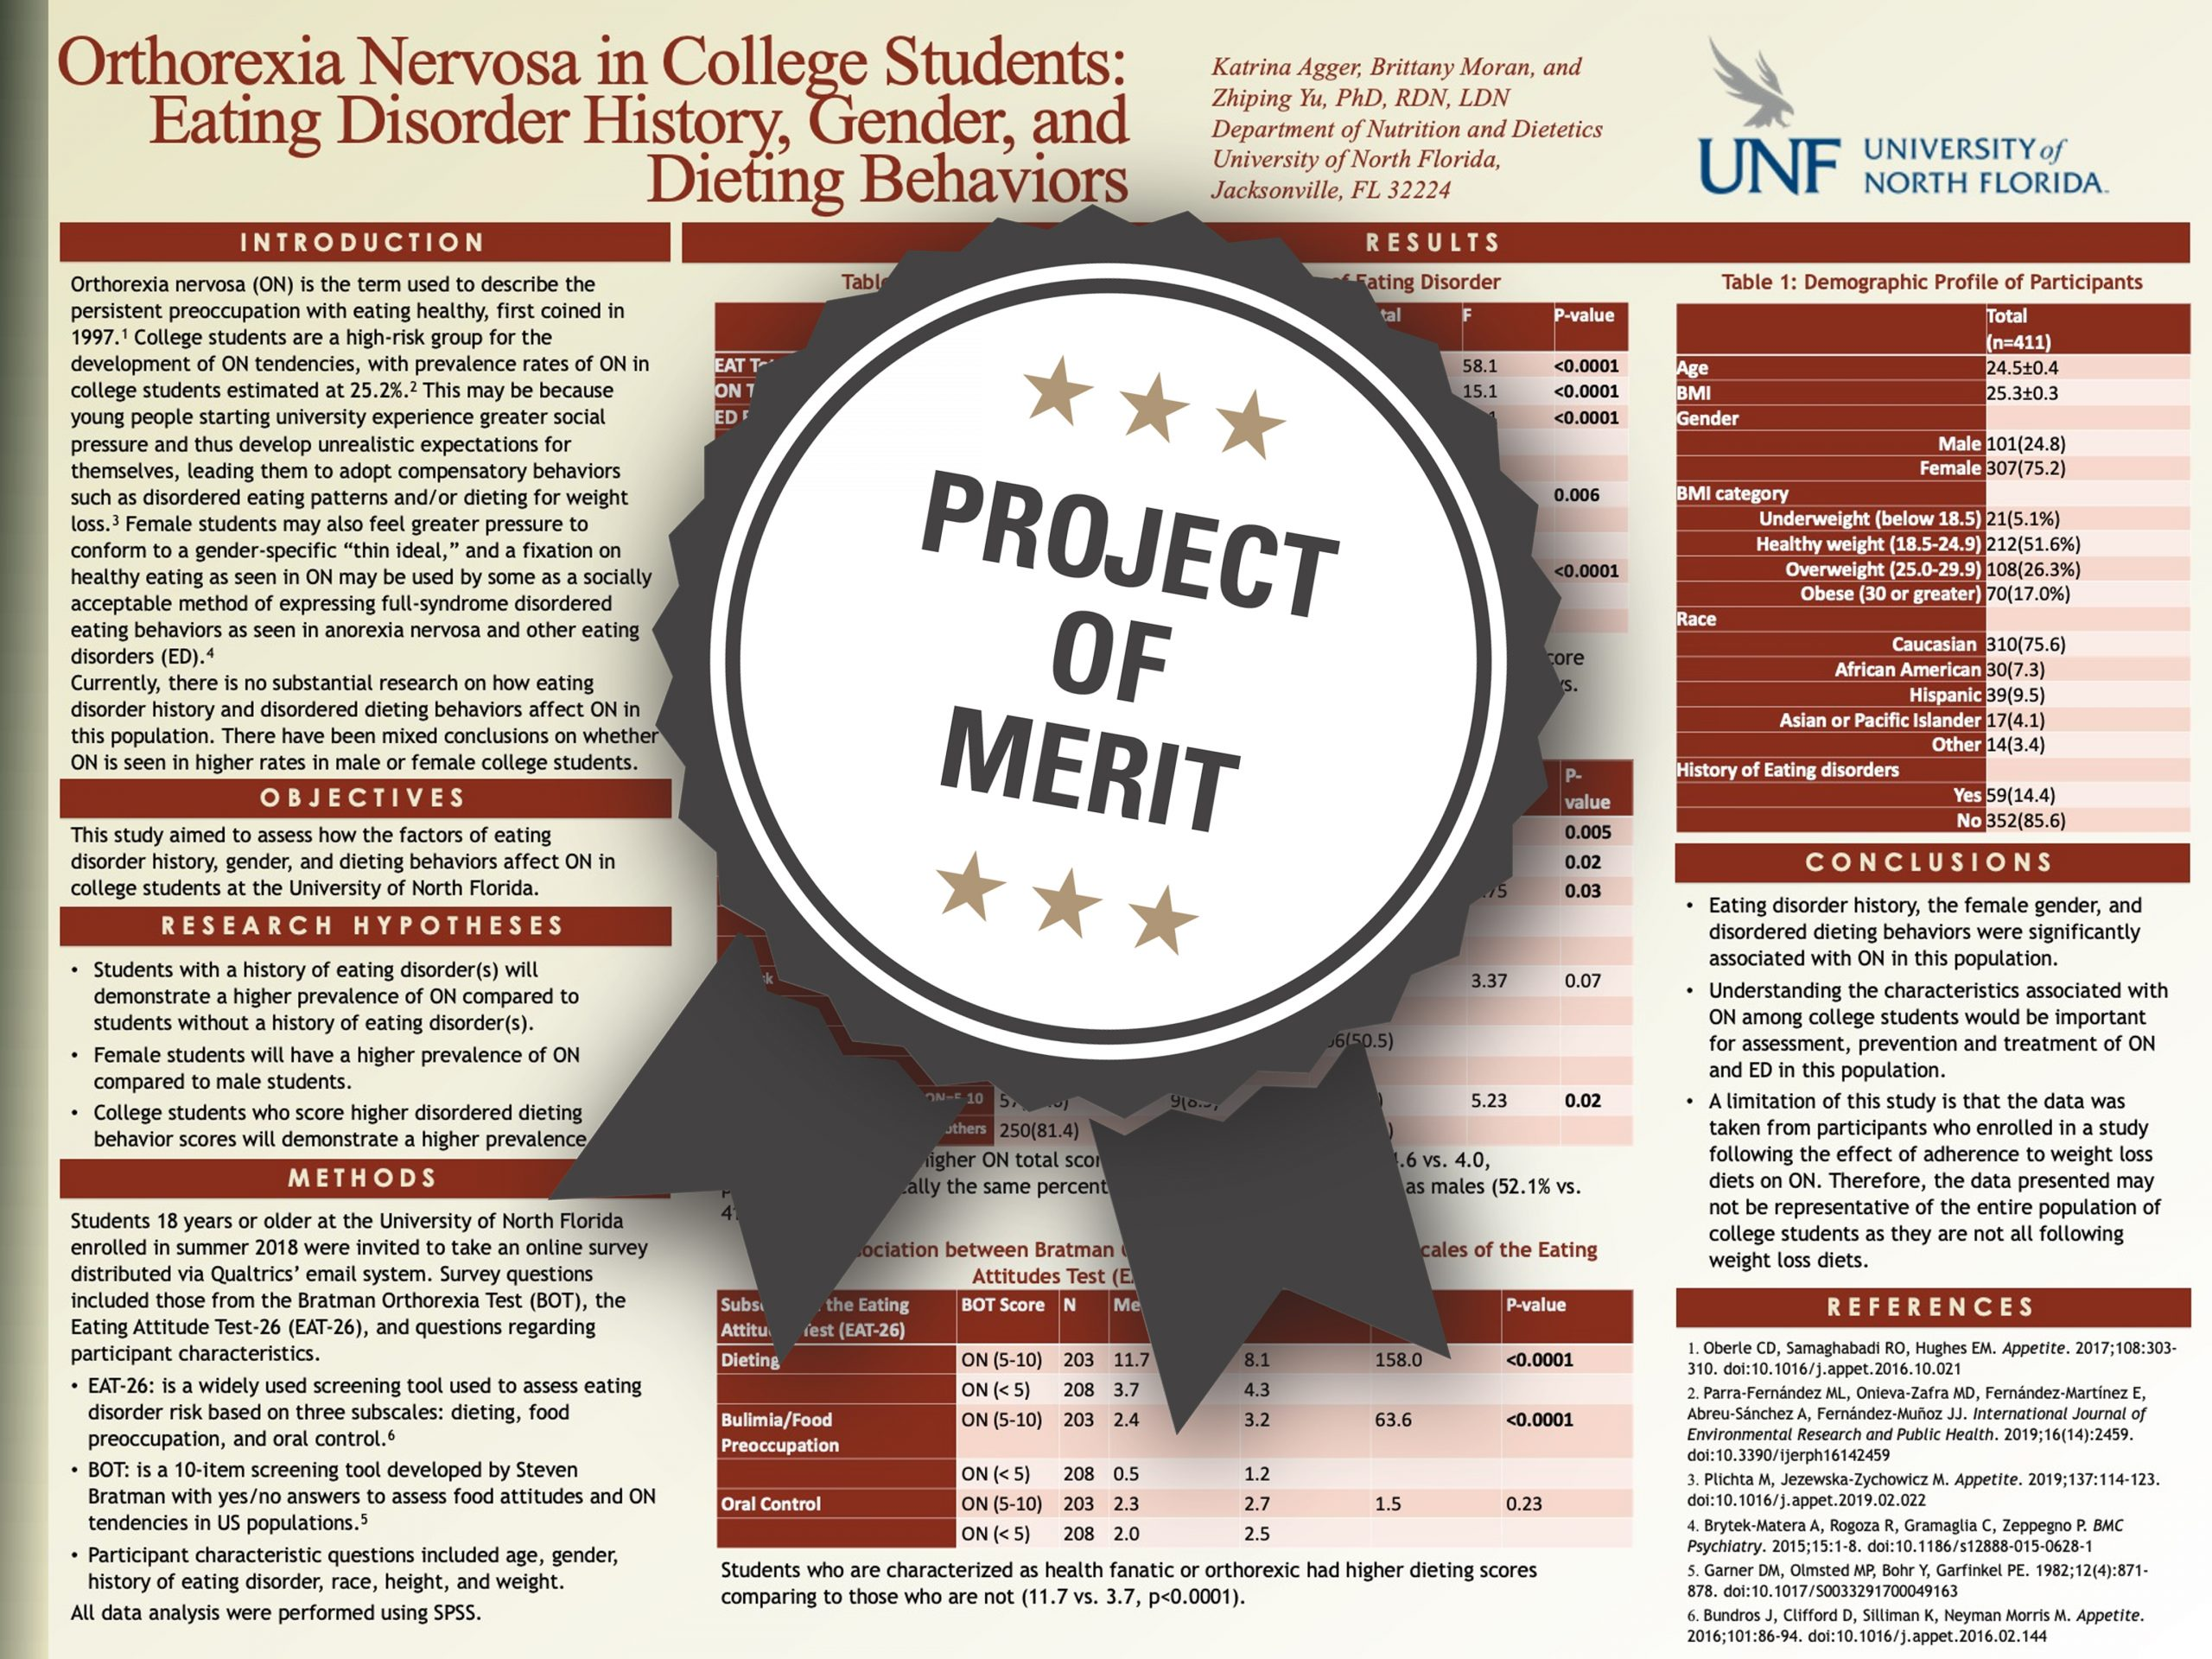 Orthorexia Nervosa in College Students: Eating Disorder History, Gender, and Dieting Behaviors​ Project of Merit poster